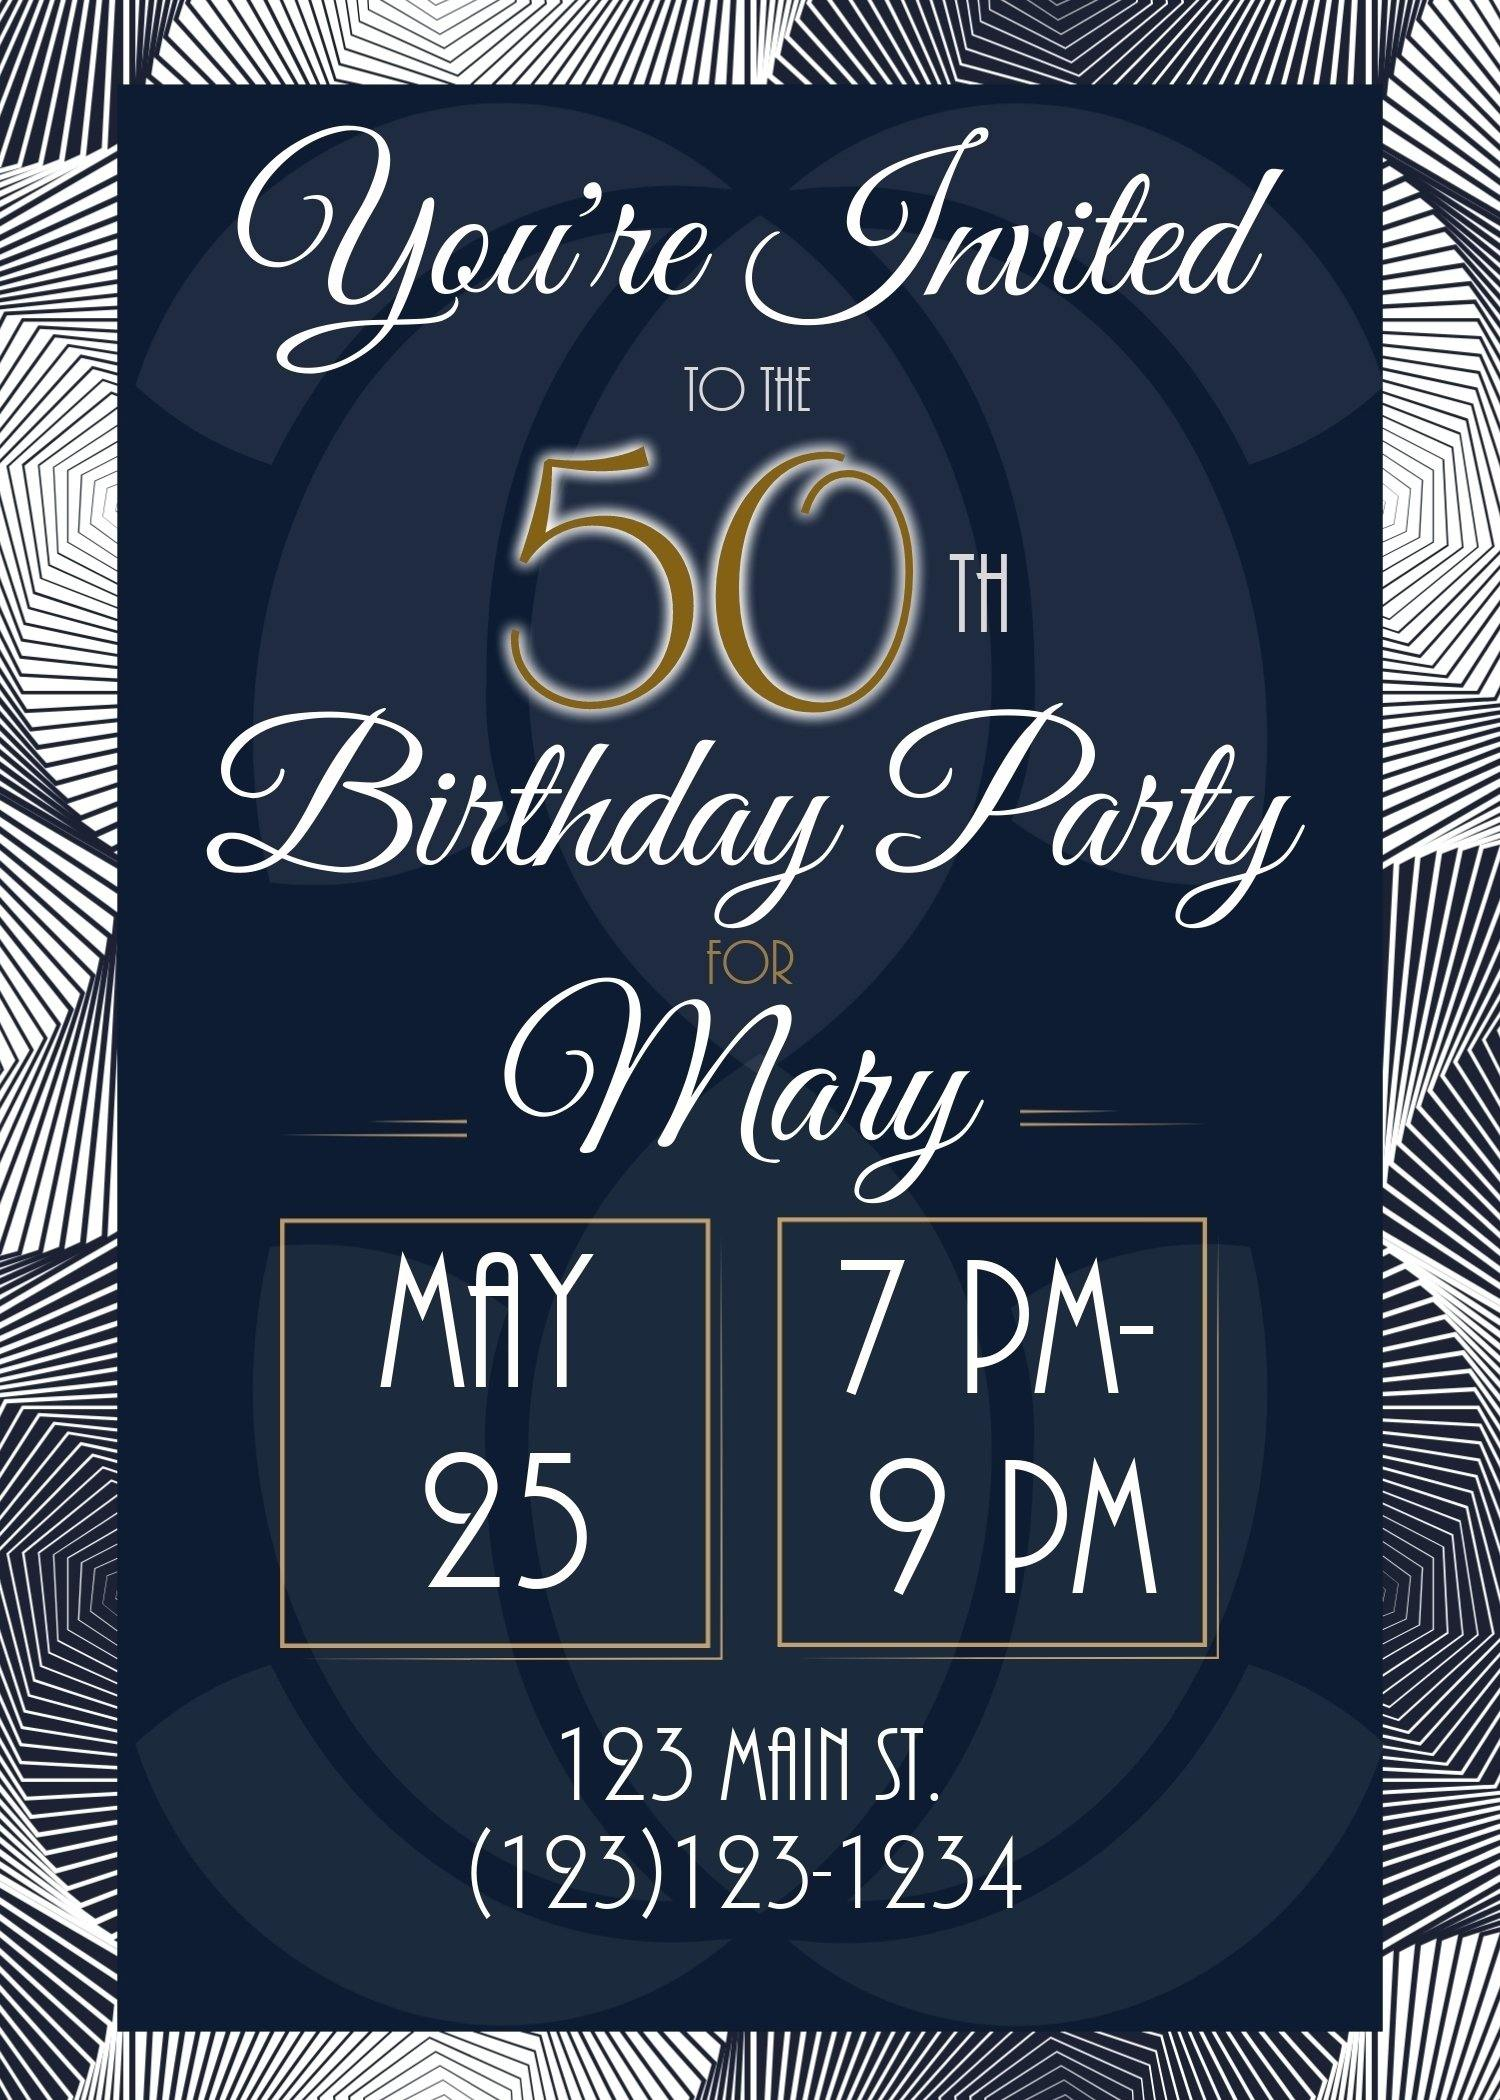 50th/Milestone Party Invitation (Editable Download) - Sunny Jar Designs